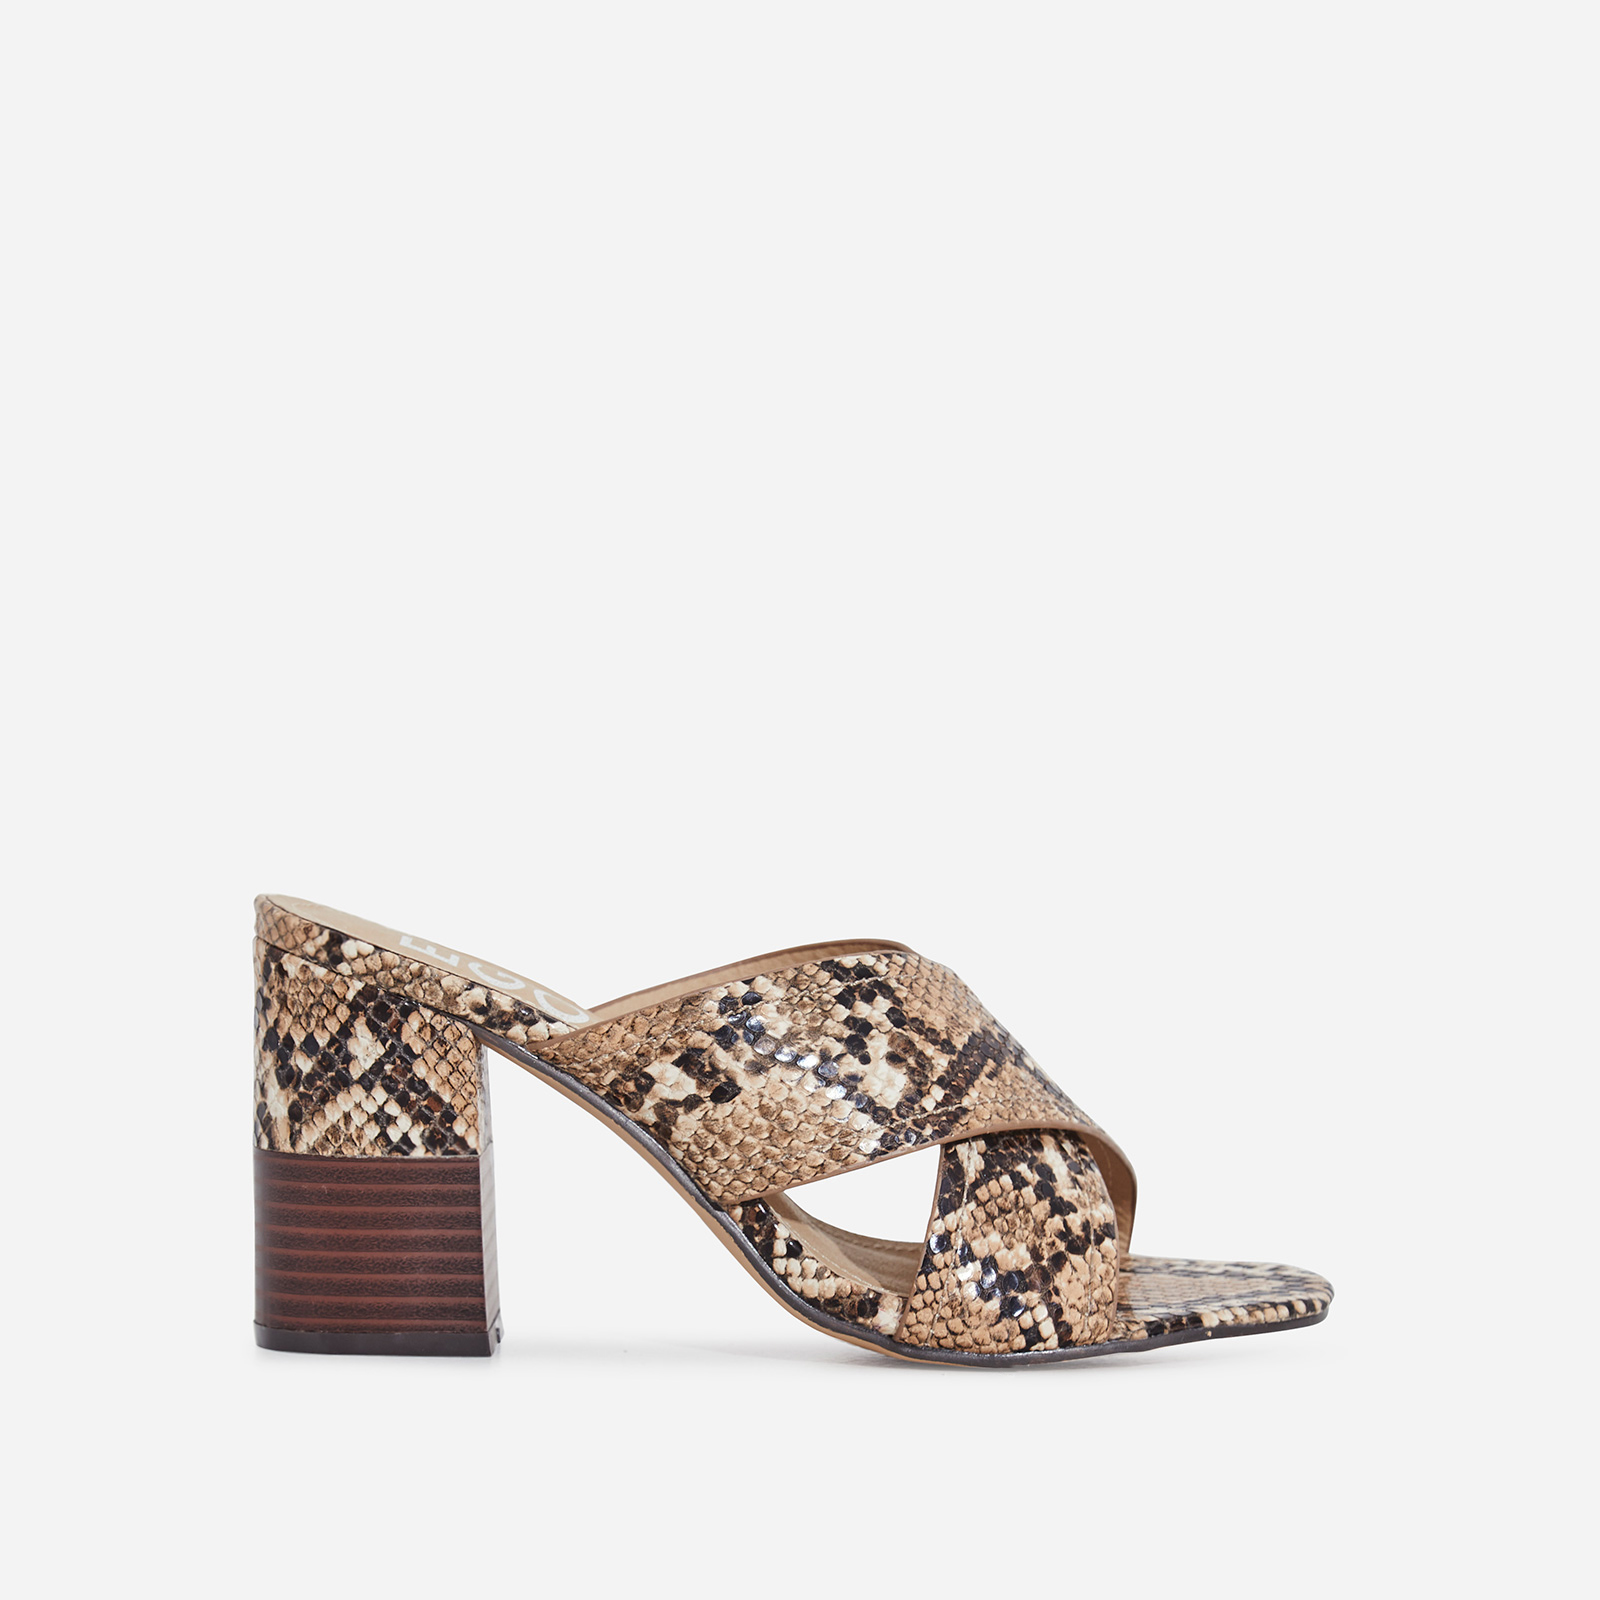 Holland Crossover Block Heel Mule In Nude Snake Print Faux Leather